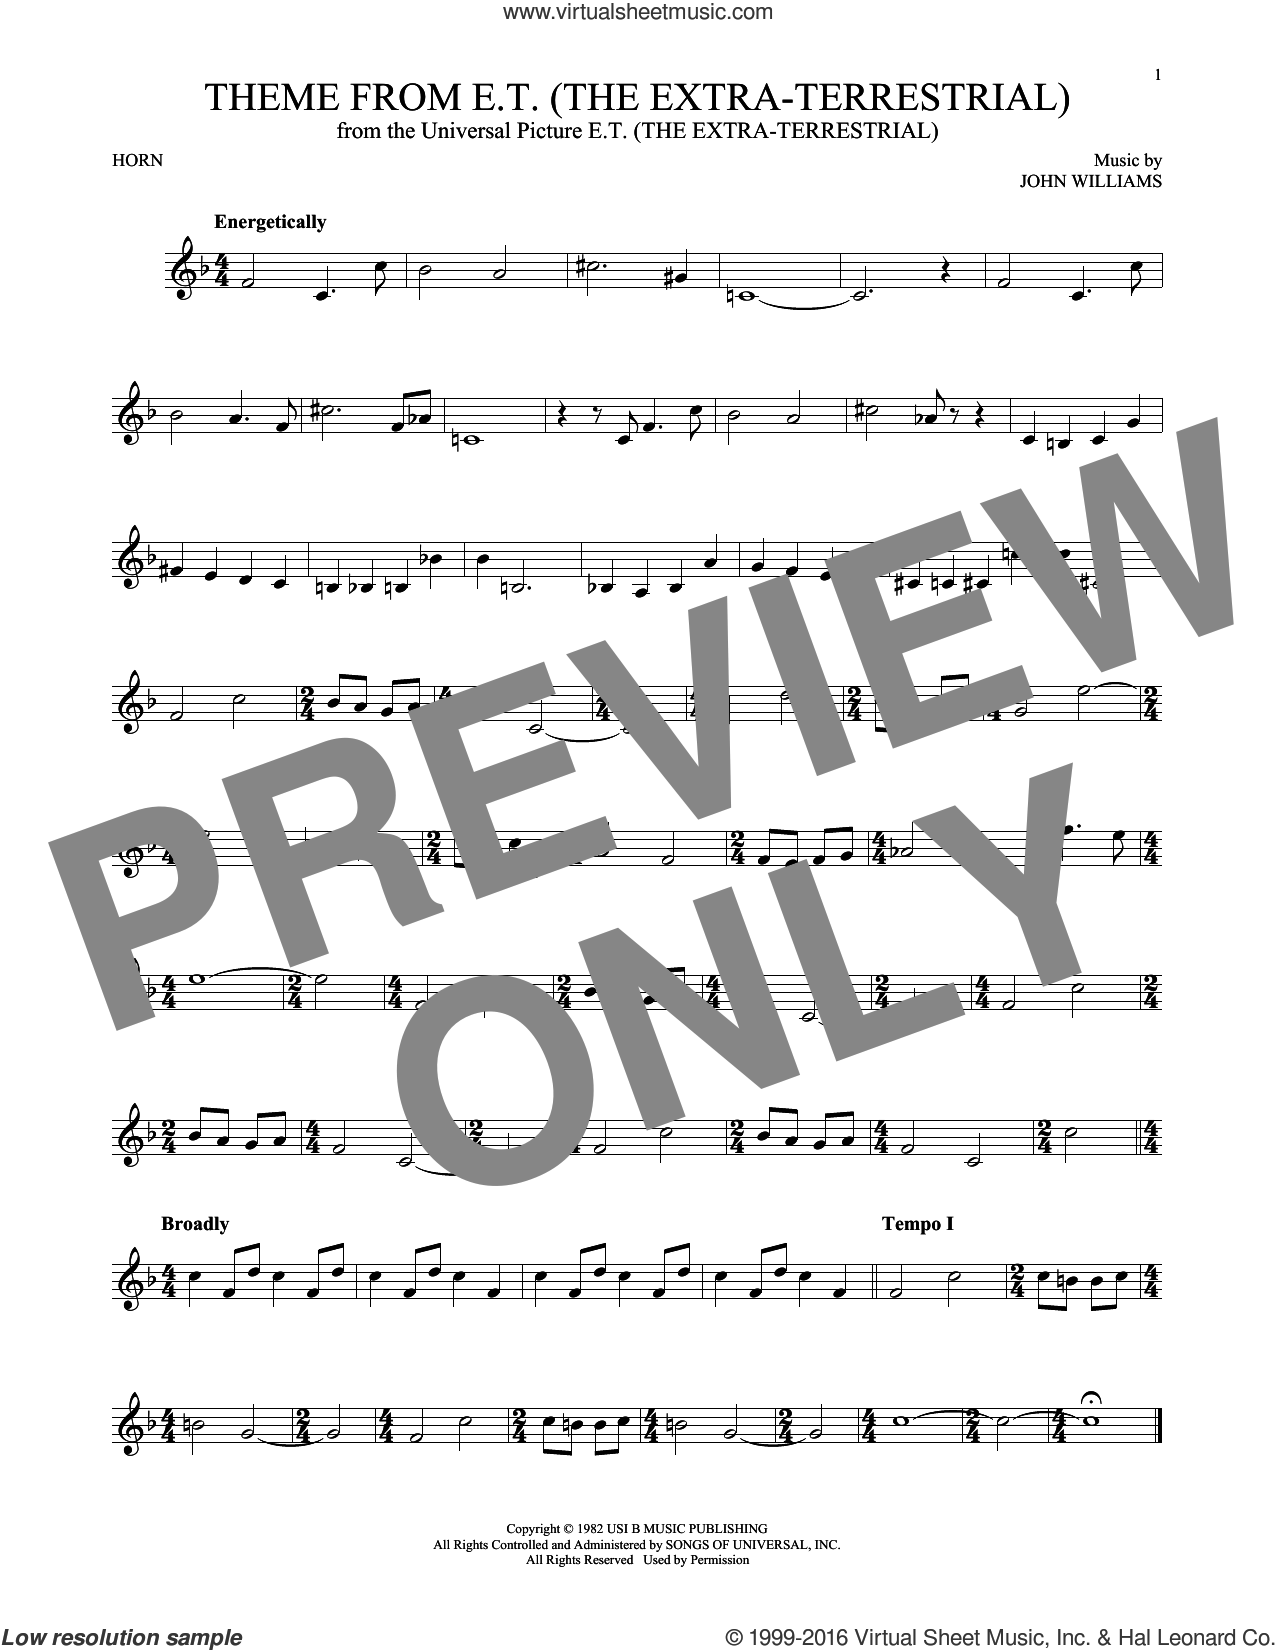 Theme From E.T. (The Extra-Terrestrial) sheet music for horn solo by John Williams, intermediate. Score Image Preview.